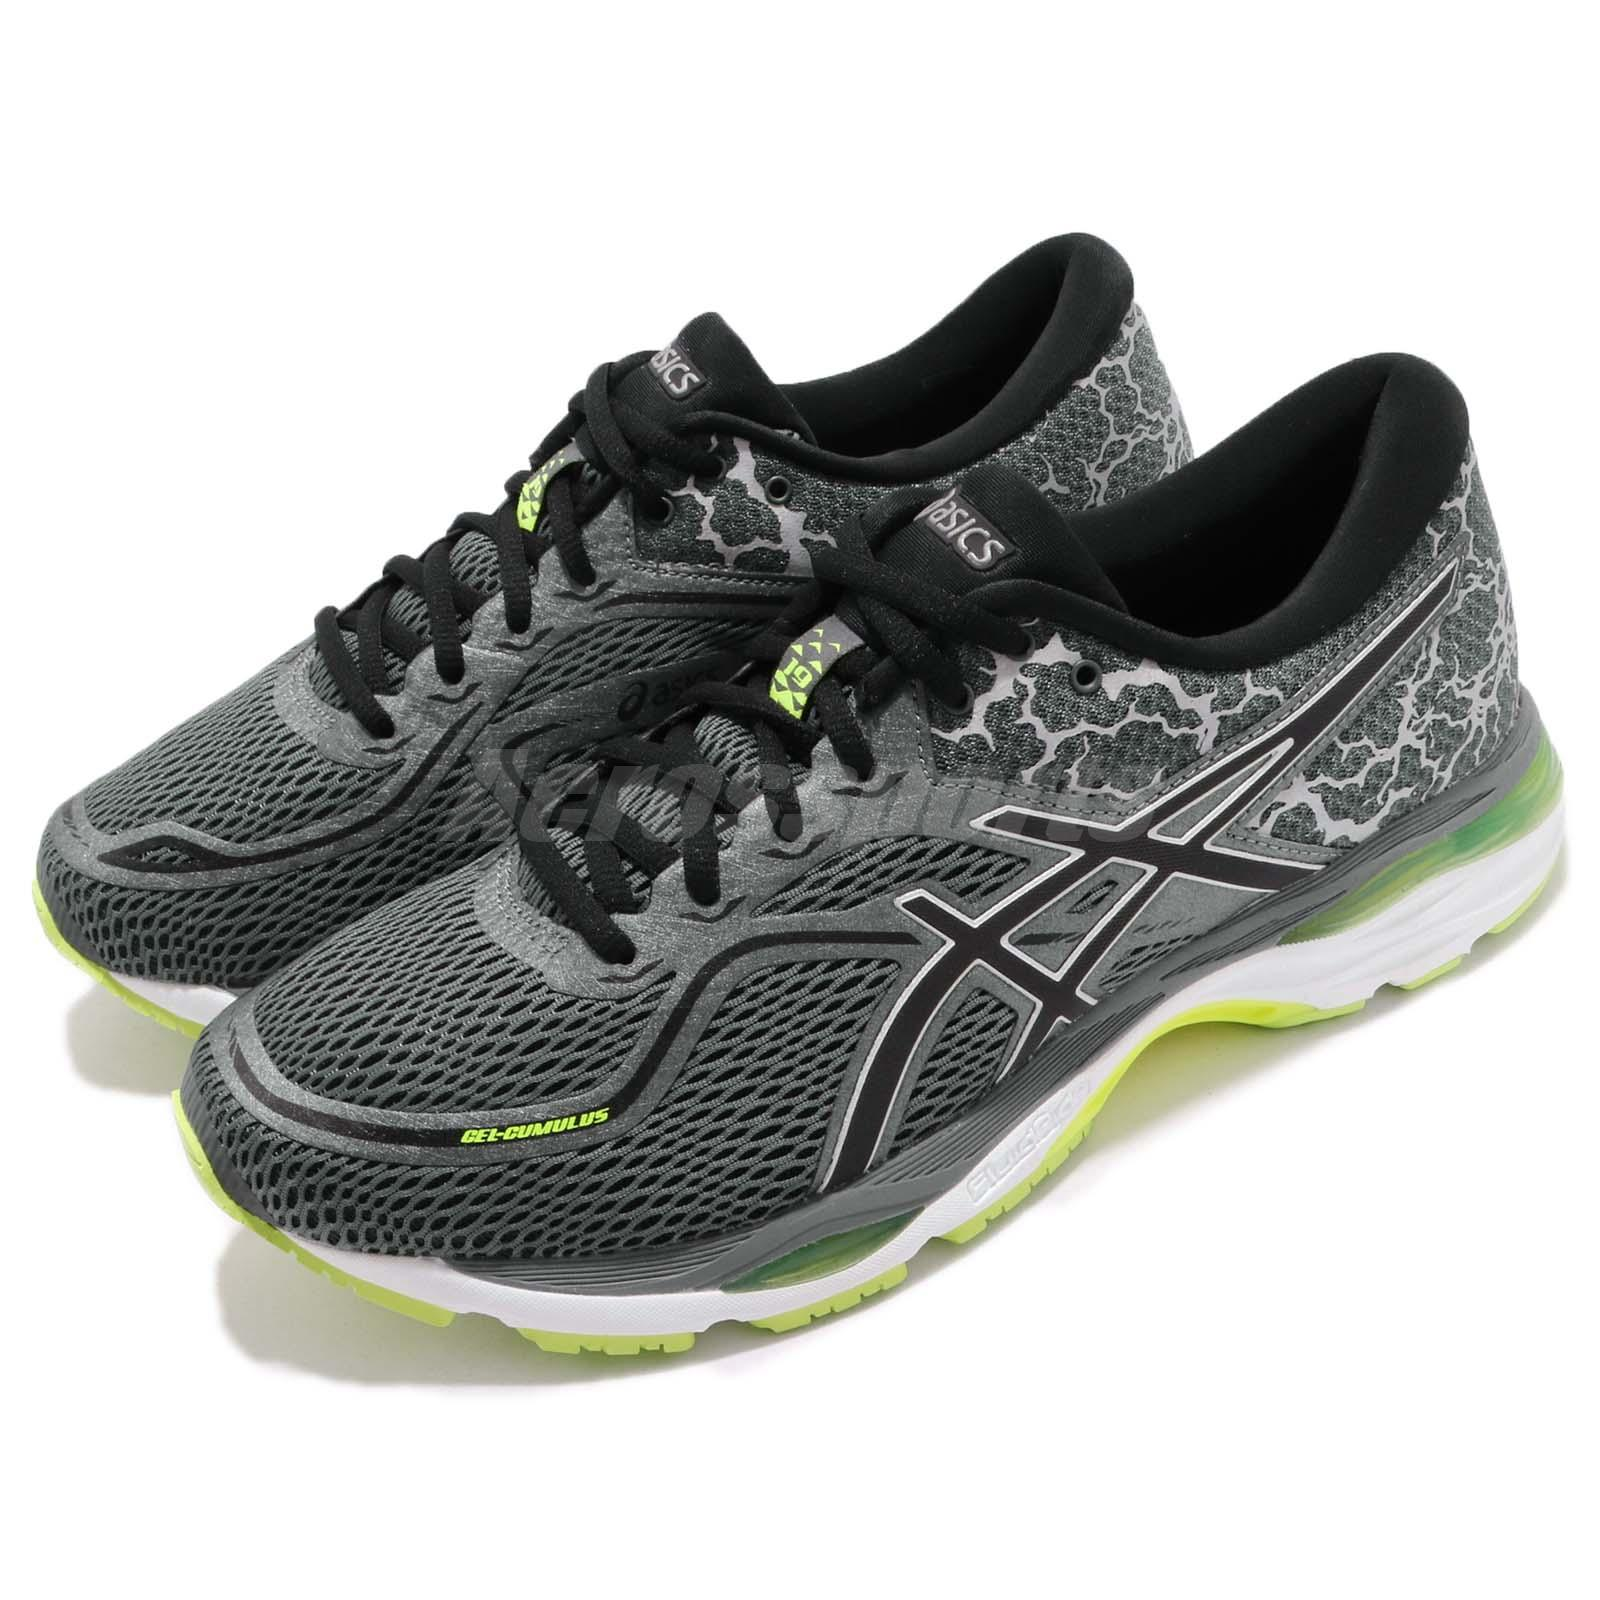 5c9814461 Details about Asics Gel-Cumulus 19 Lite-Show Grey Yellow Men Gear Road Running  Shoe T8A1N-9790